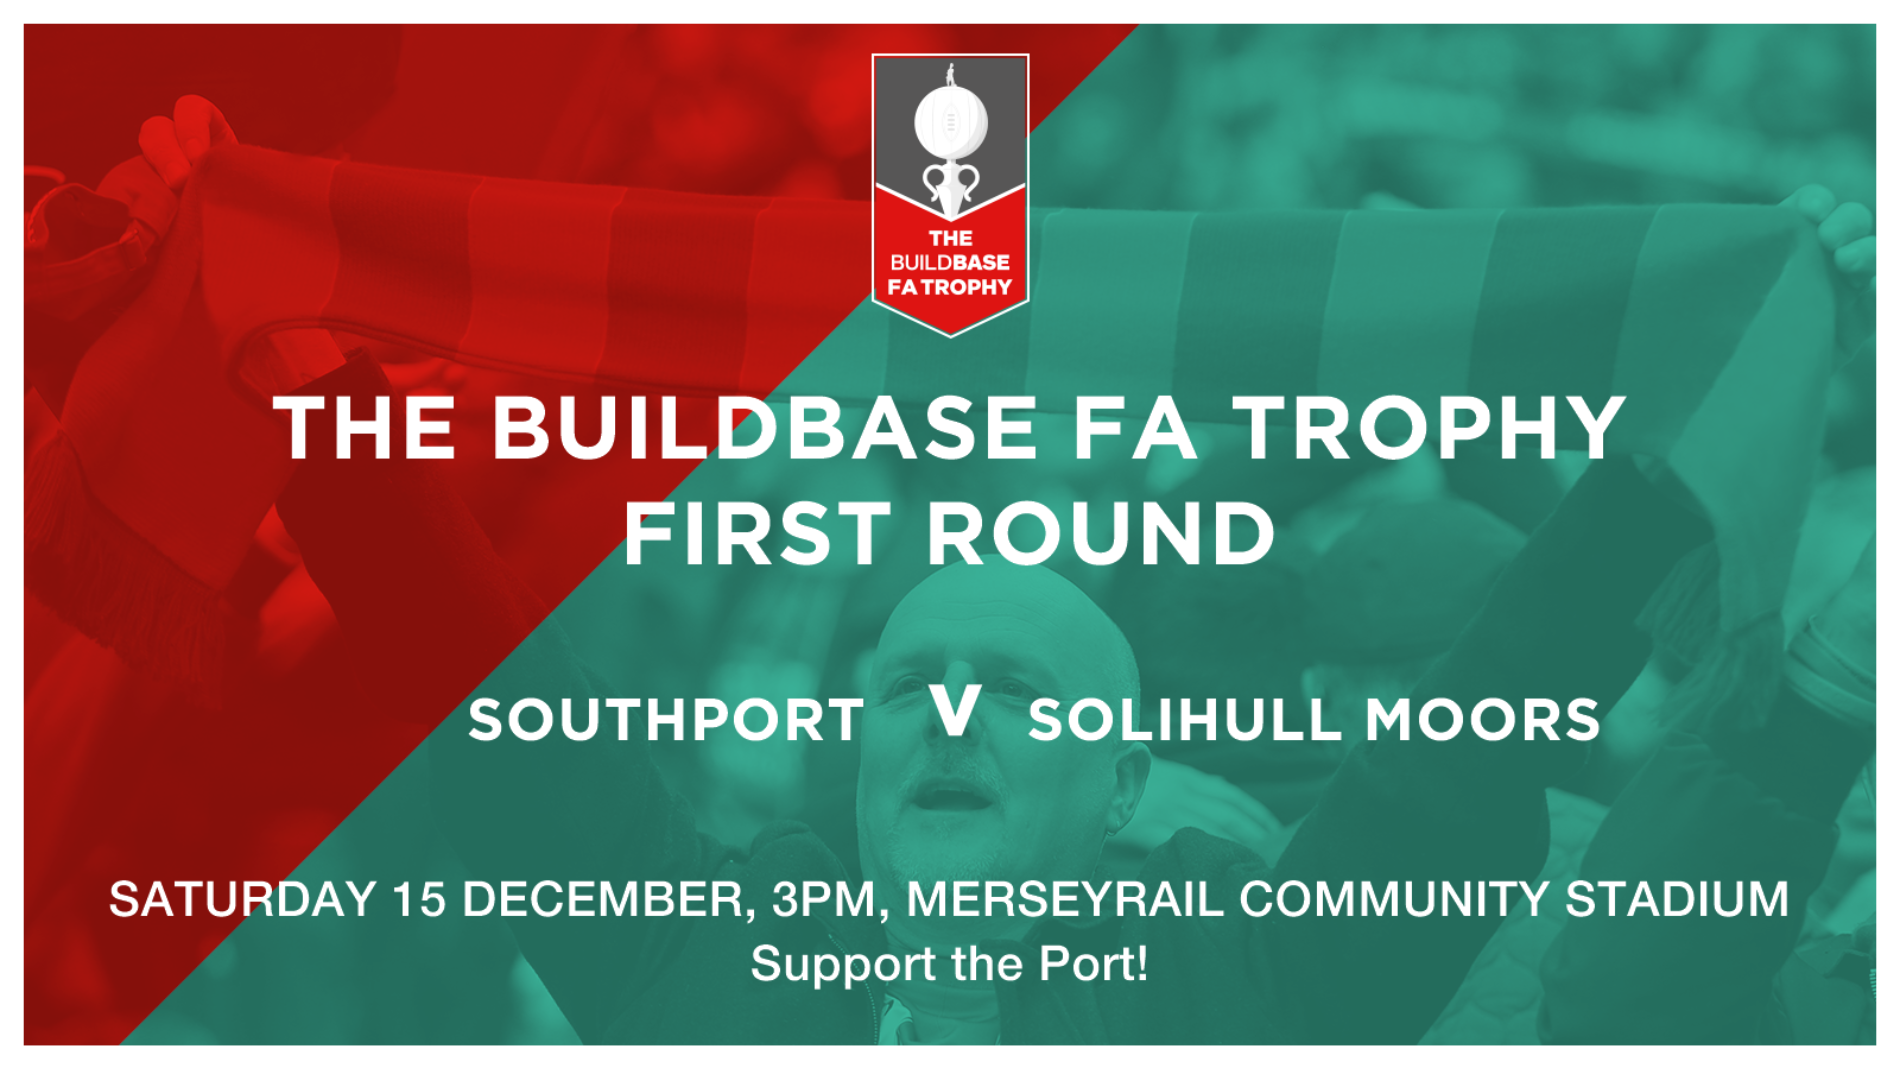 On Saturday 15 December, Southport FC host higher league opposition Solihull Moors in the Buildbase FA Trophy First Round, 3pm kick-off.    Ahead of what is a big couple of days for the club, weÂ'd like to encourage supporters to get to the Merseyrail Community Stadium early to enjoy the following...